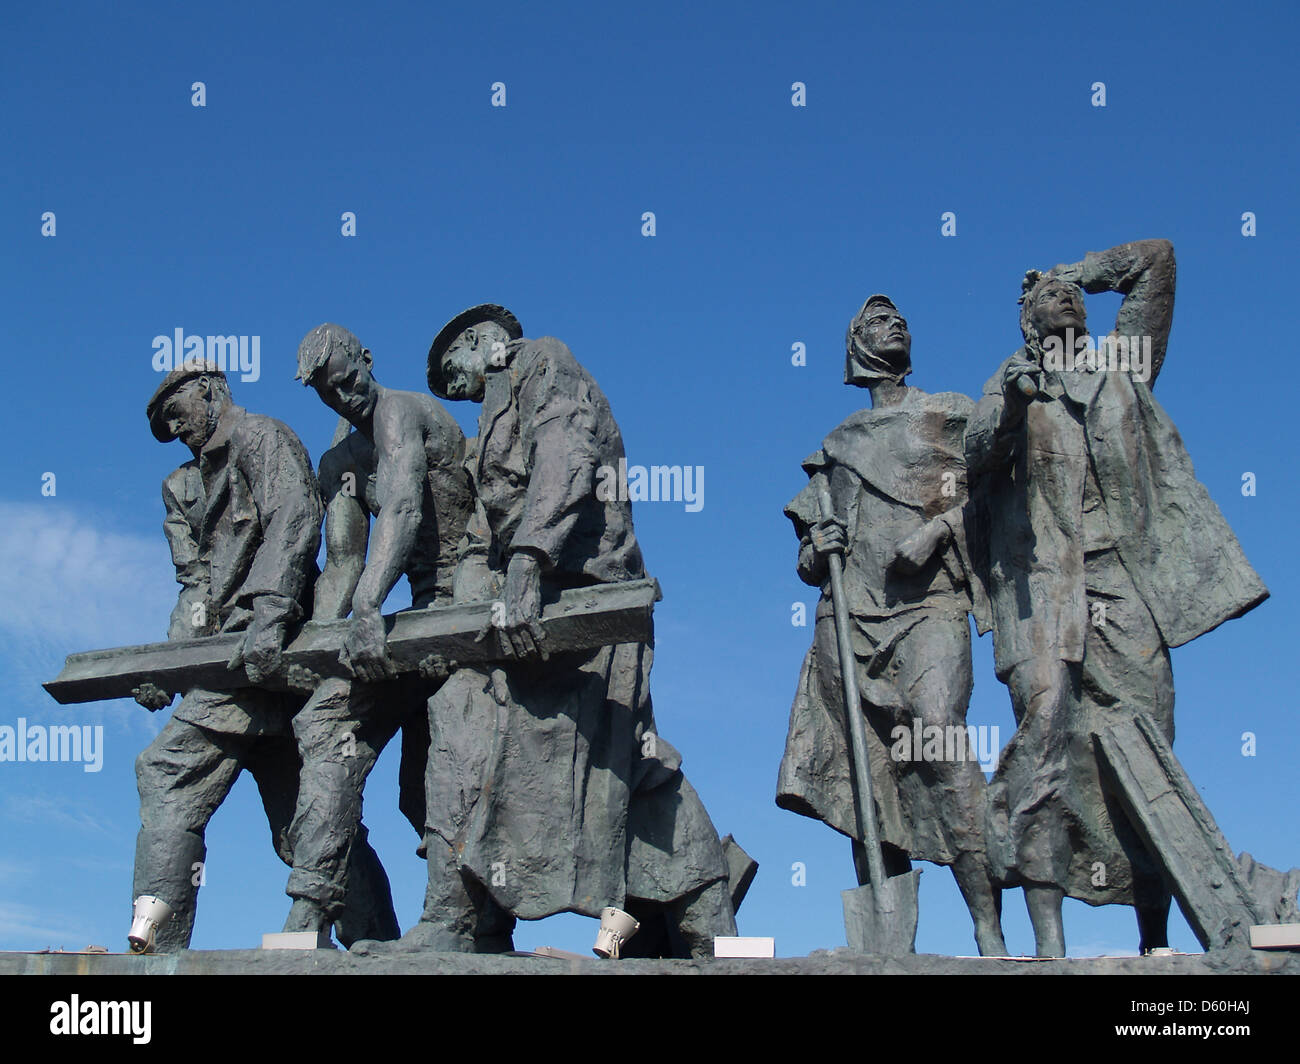 Statues of the Defenders of Leningrad Monument,Saint Petersburg - Stock Image